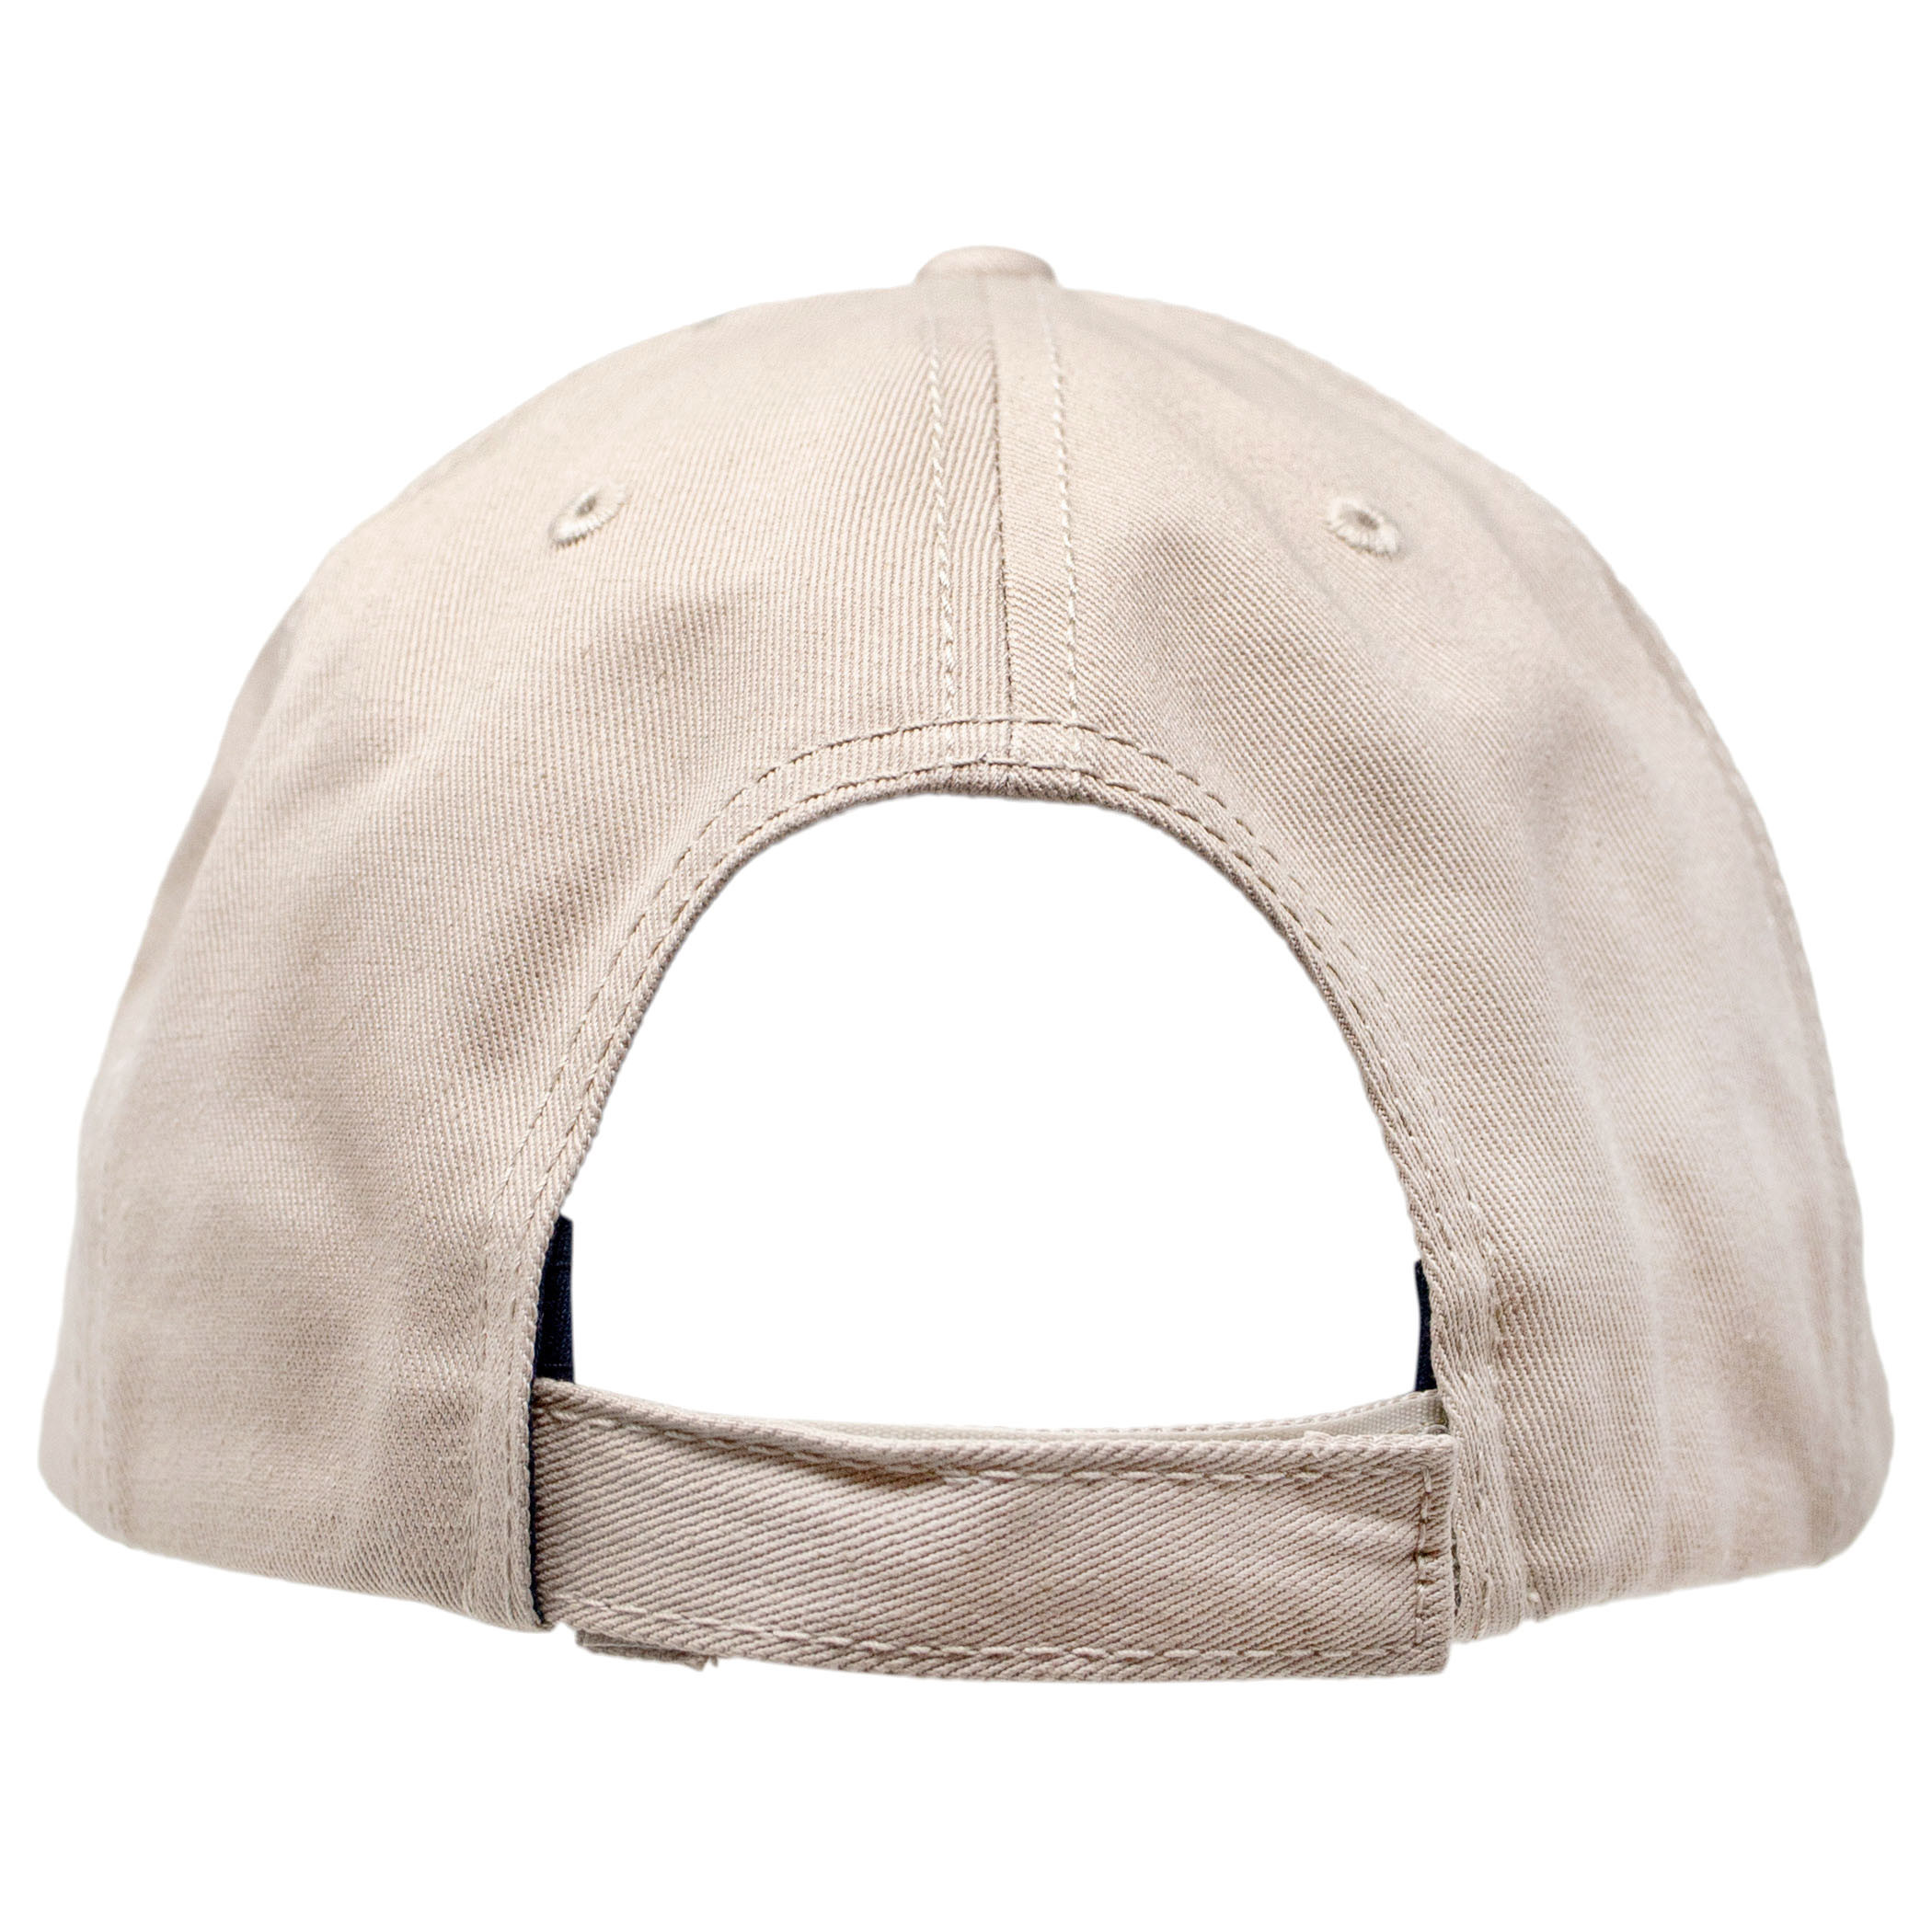 Coors Banquet Beer Logo Adjustable Khaki Hat Beige